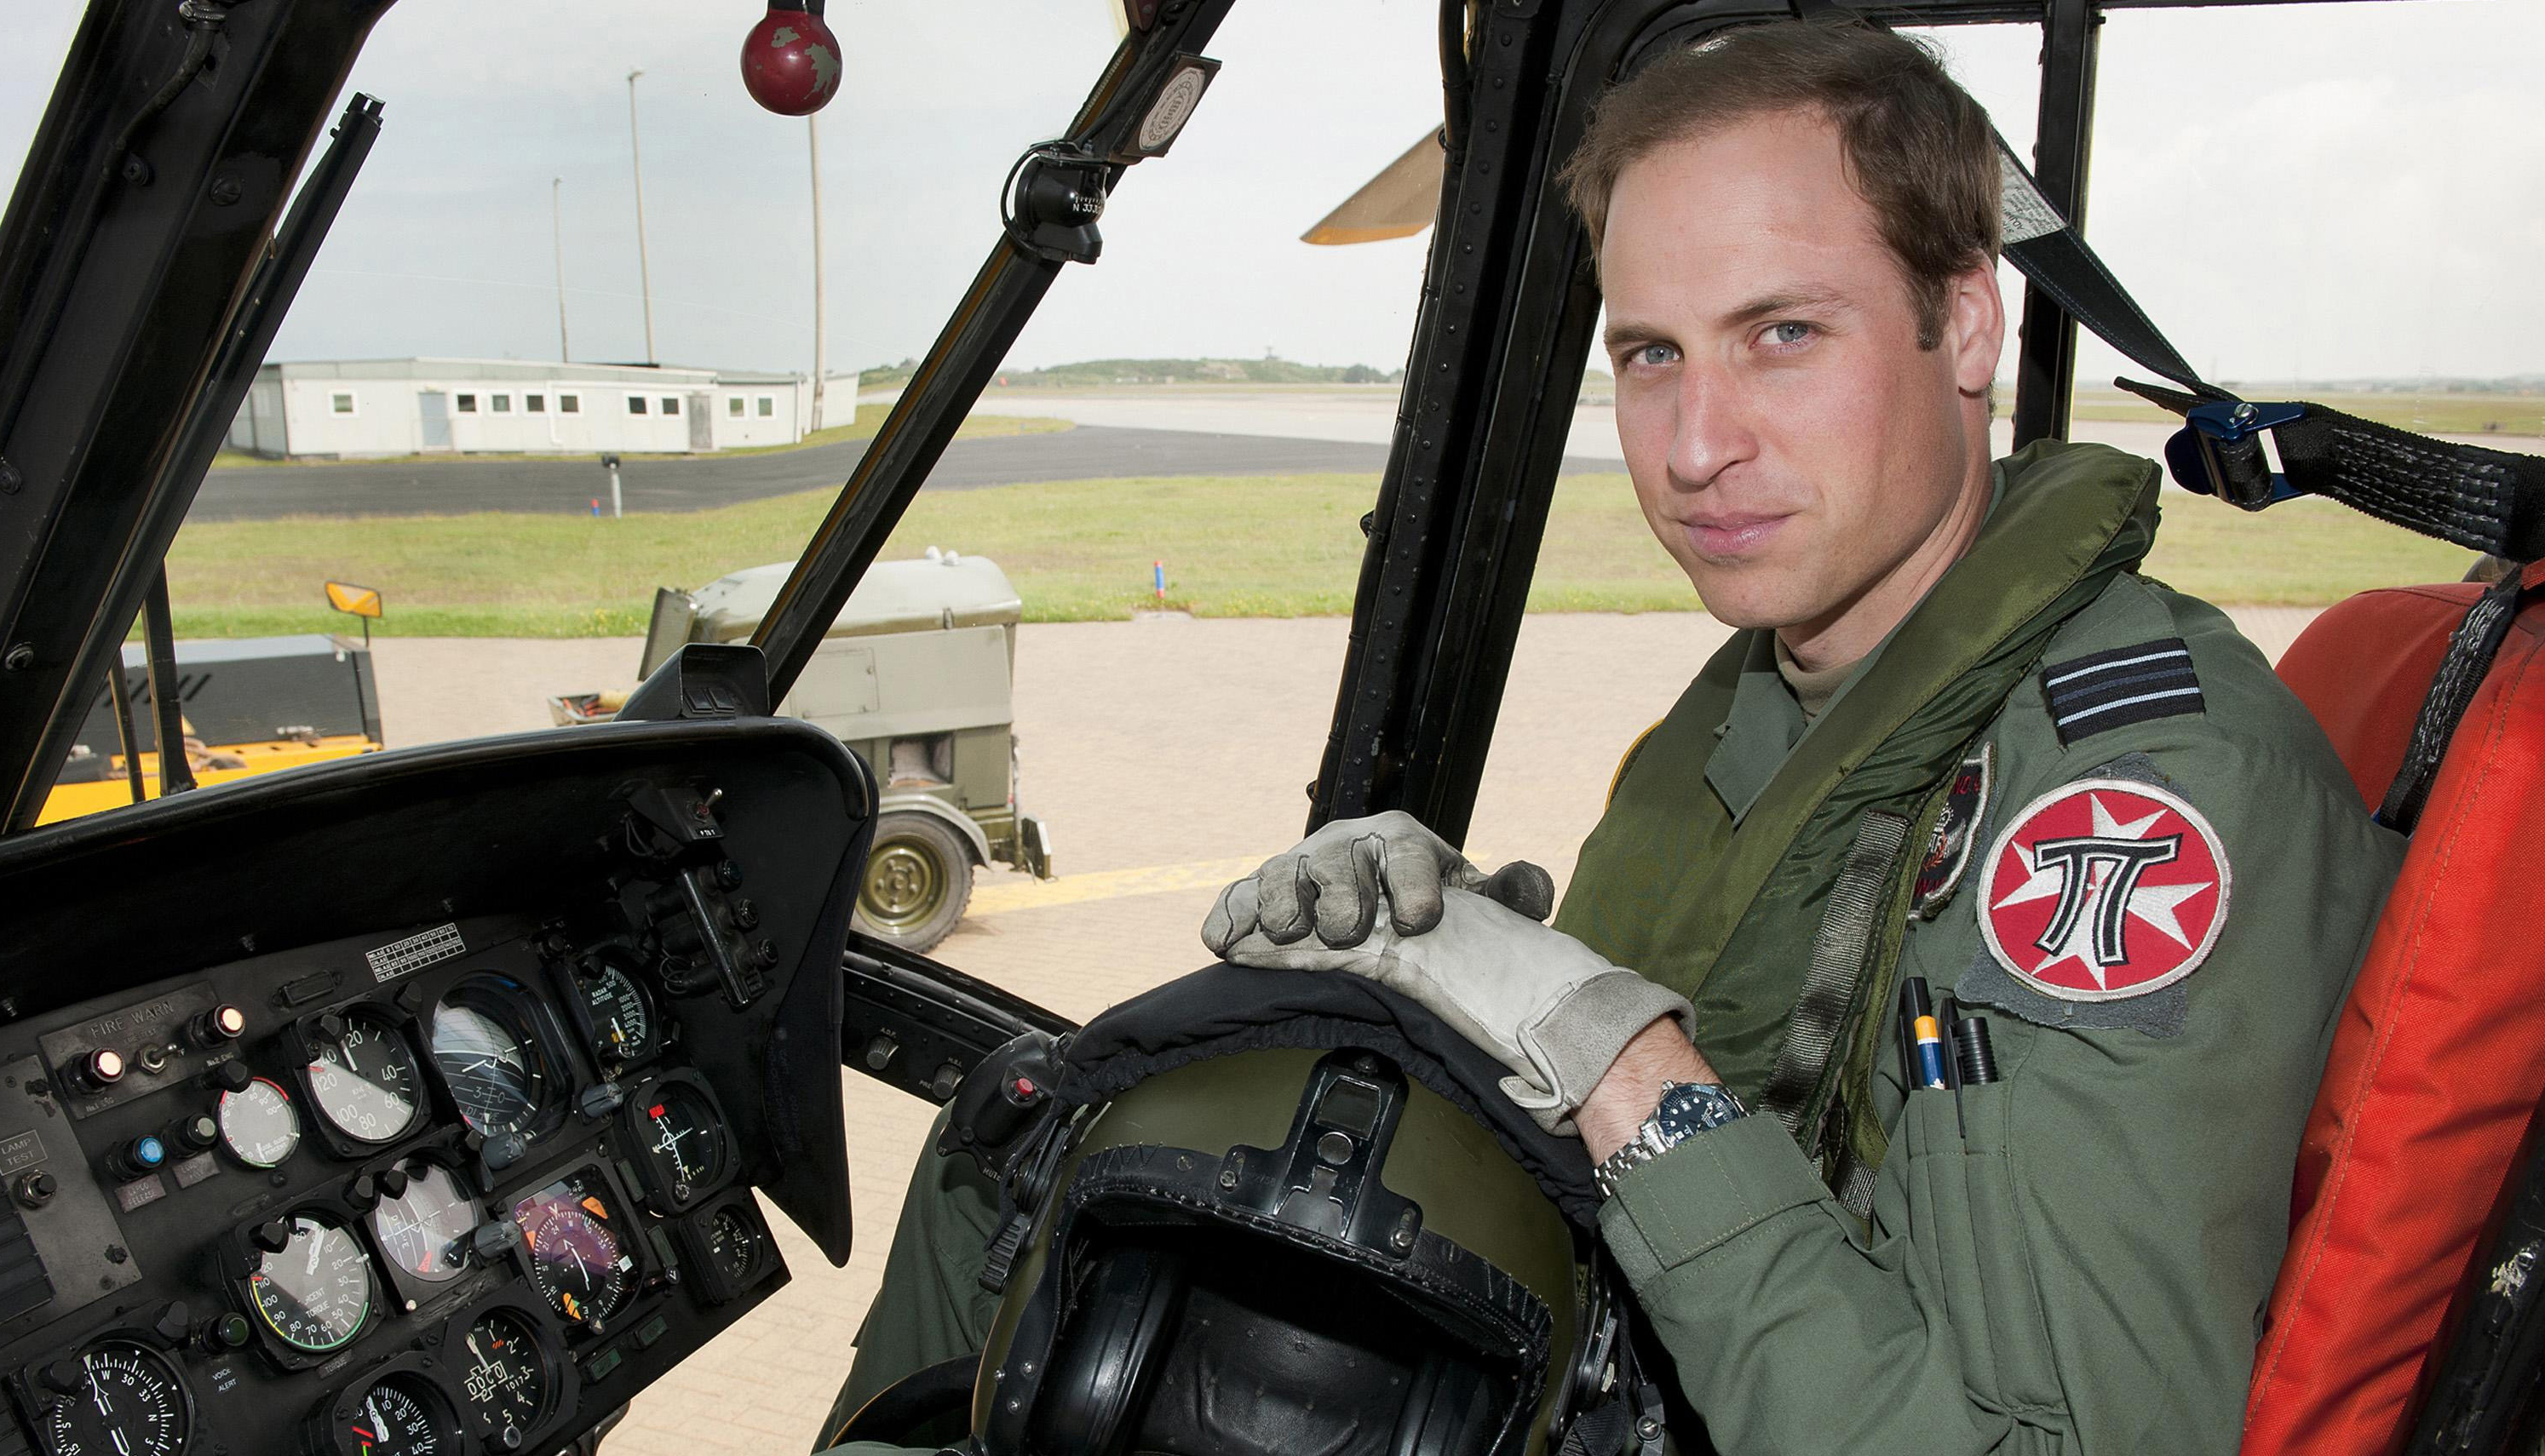 Prince William carries out last shift as air ambulance pilot